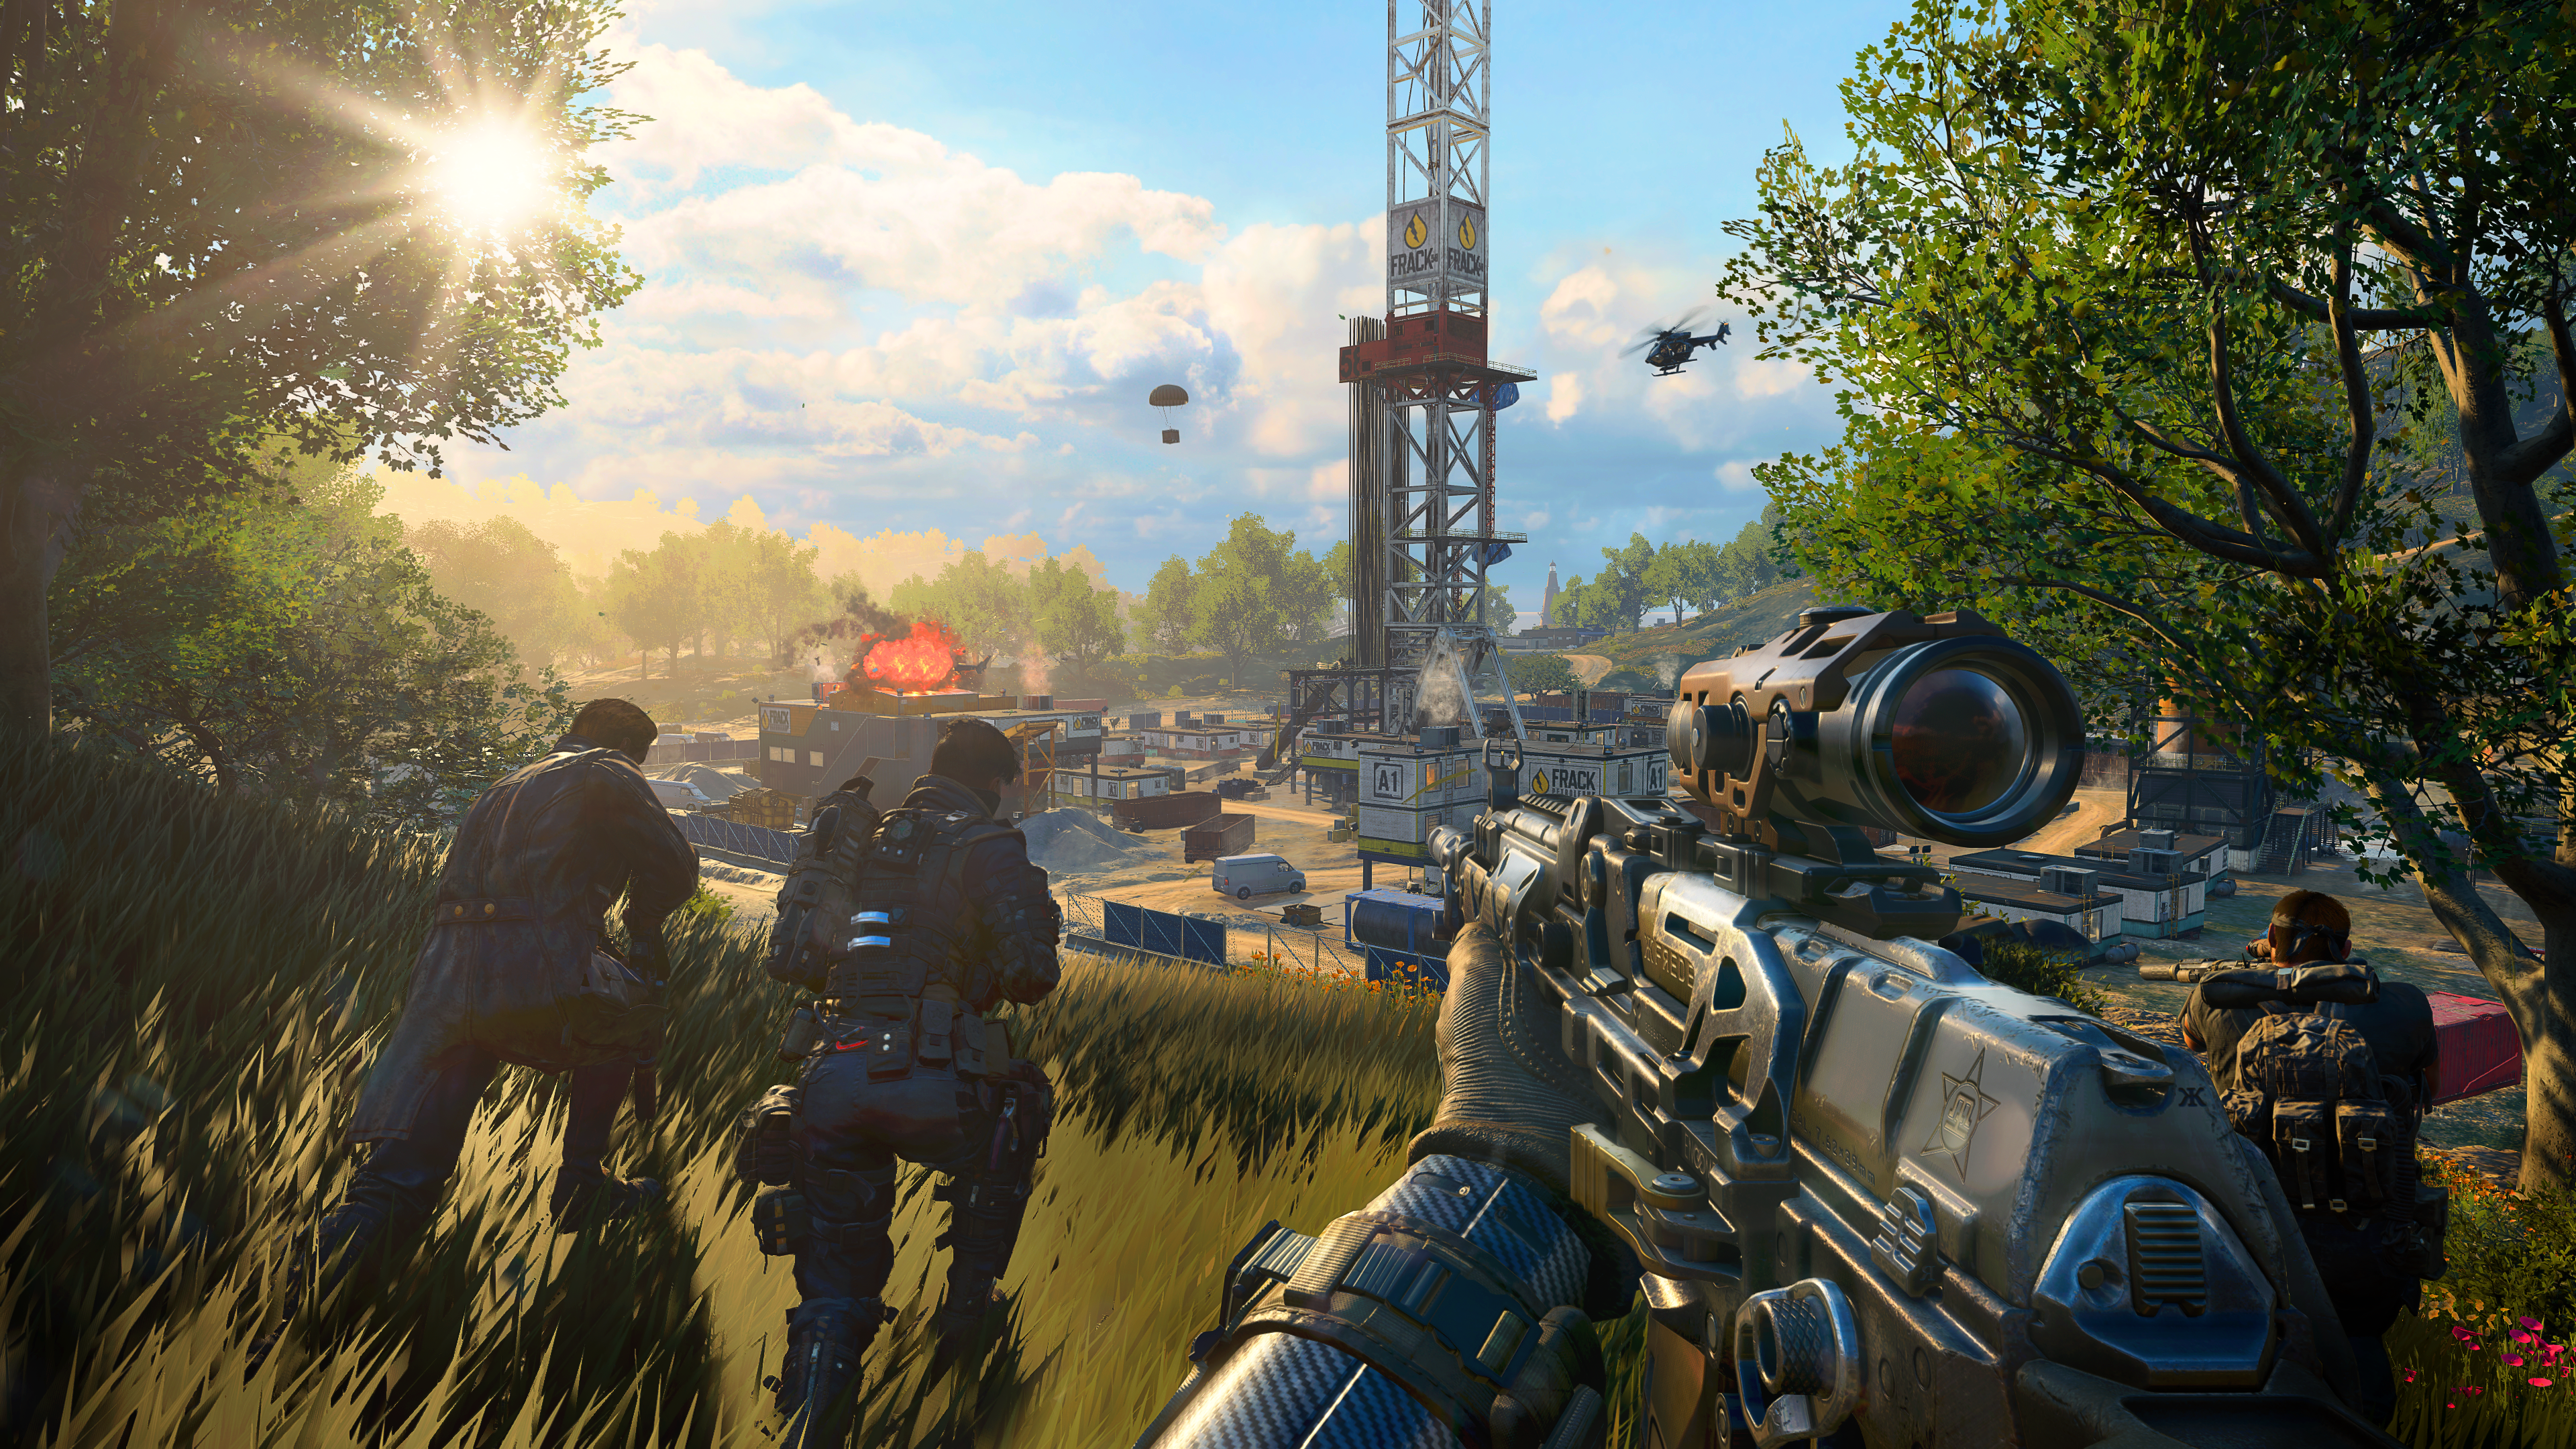 Black Ops 4 tips for multiplayer and Blackout from CWL pros